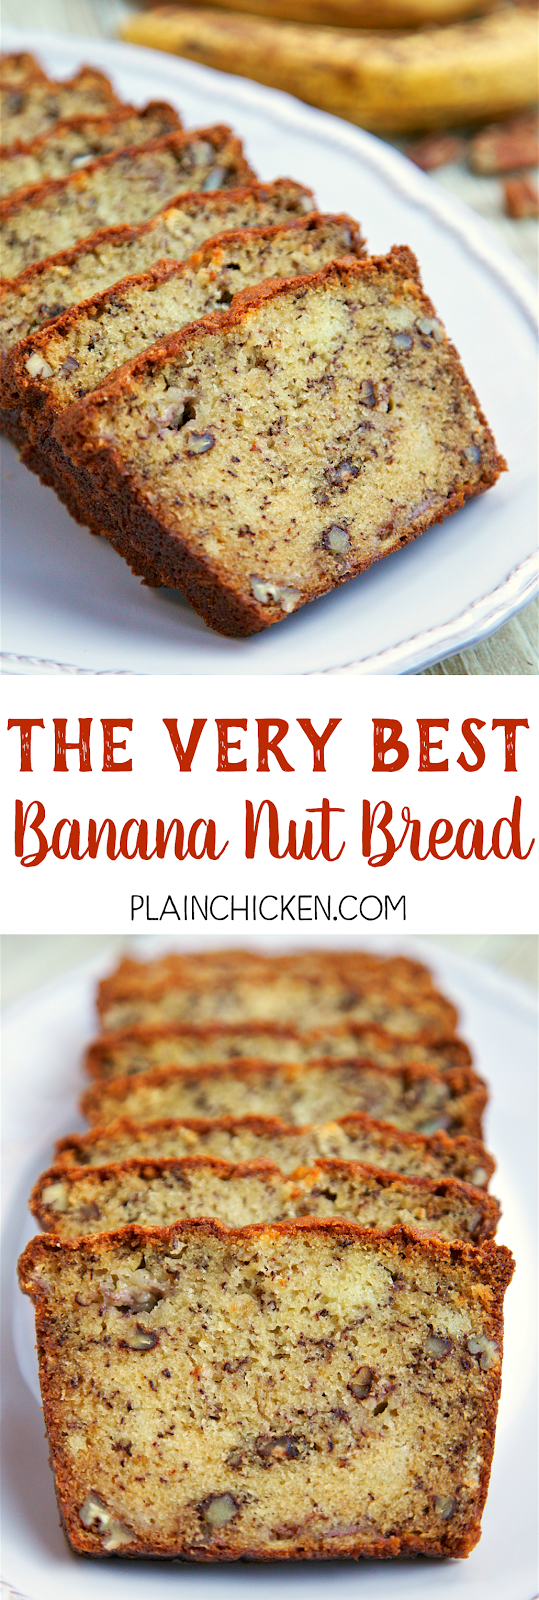 The Very Best Banana Nut Bread Plain Chicken